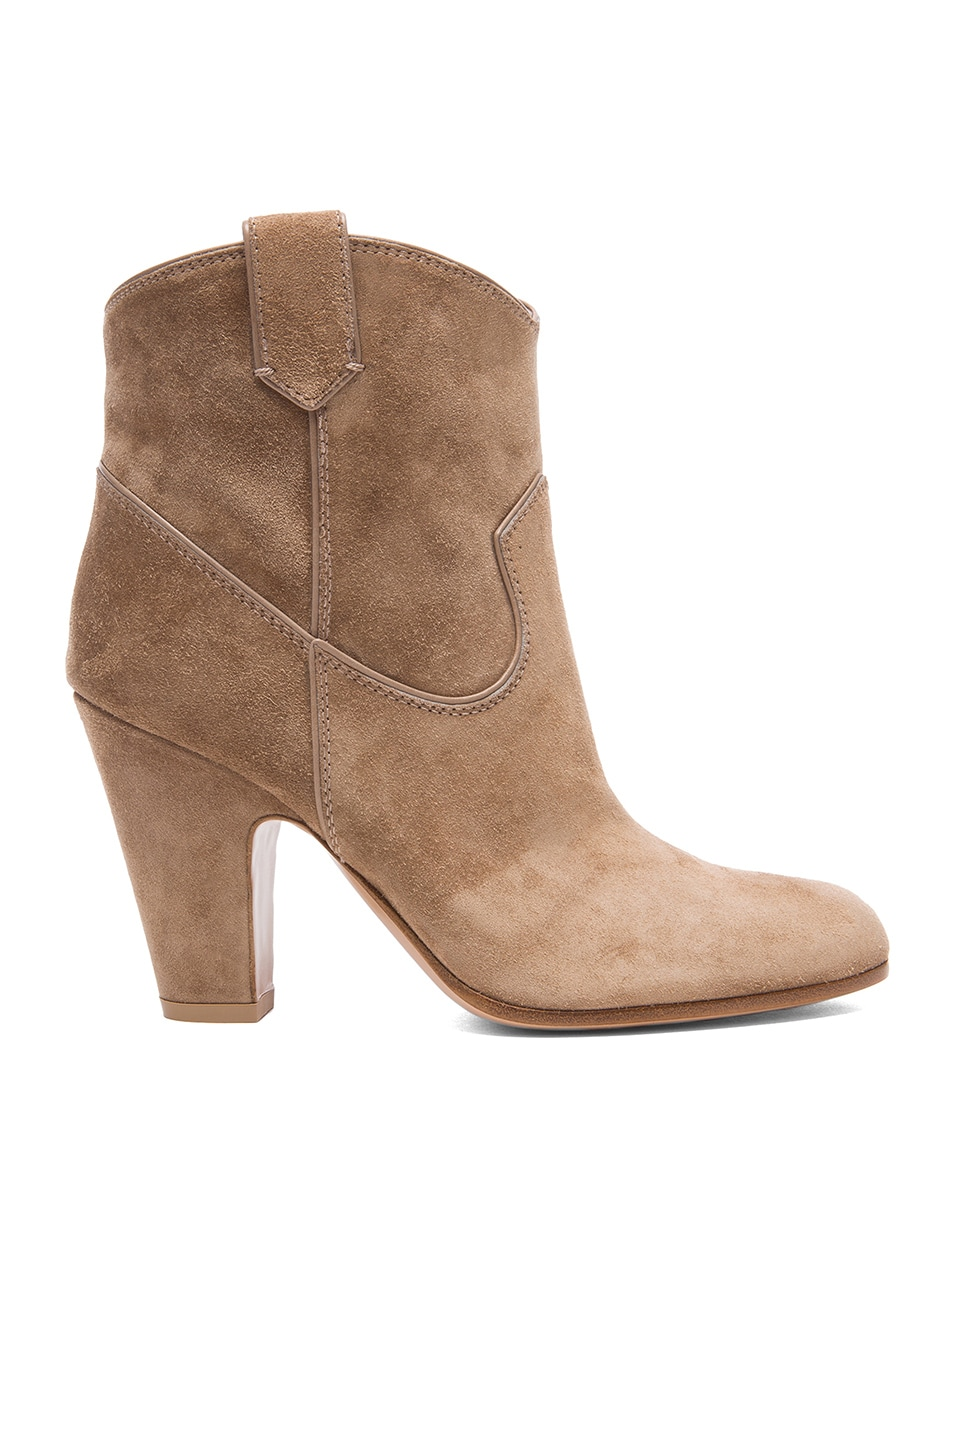 Image 1 of Gianvito Rossi Western Suede Booties in Suede Bisque